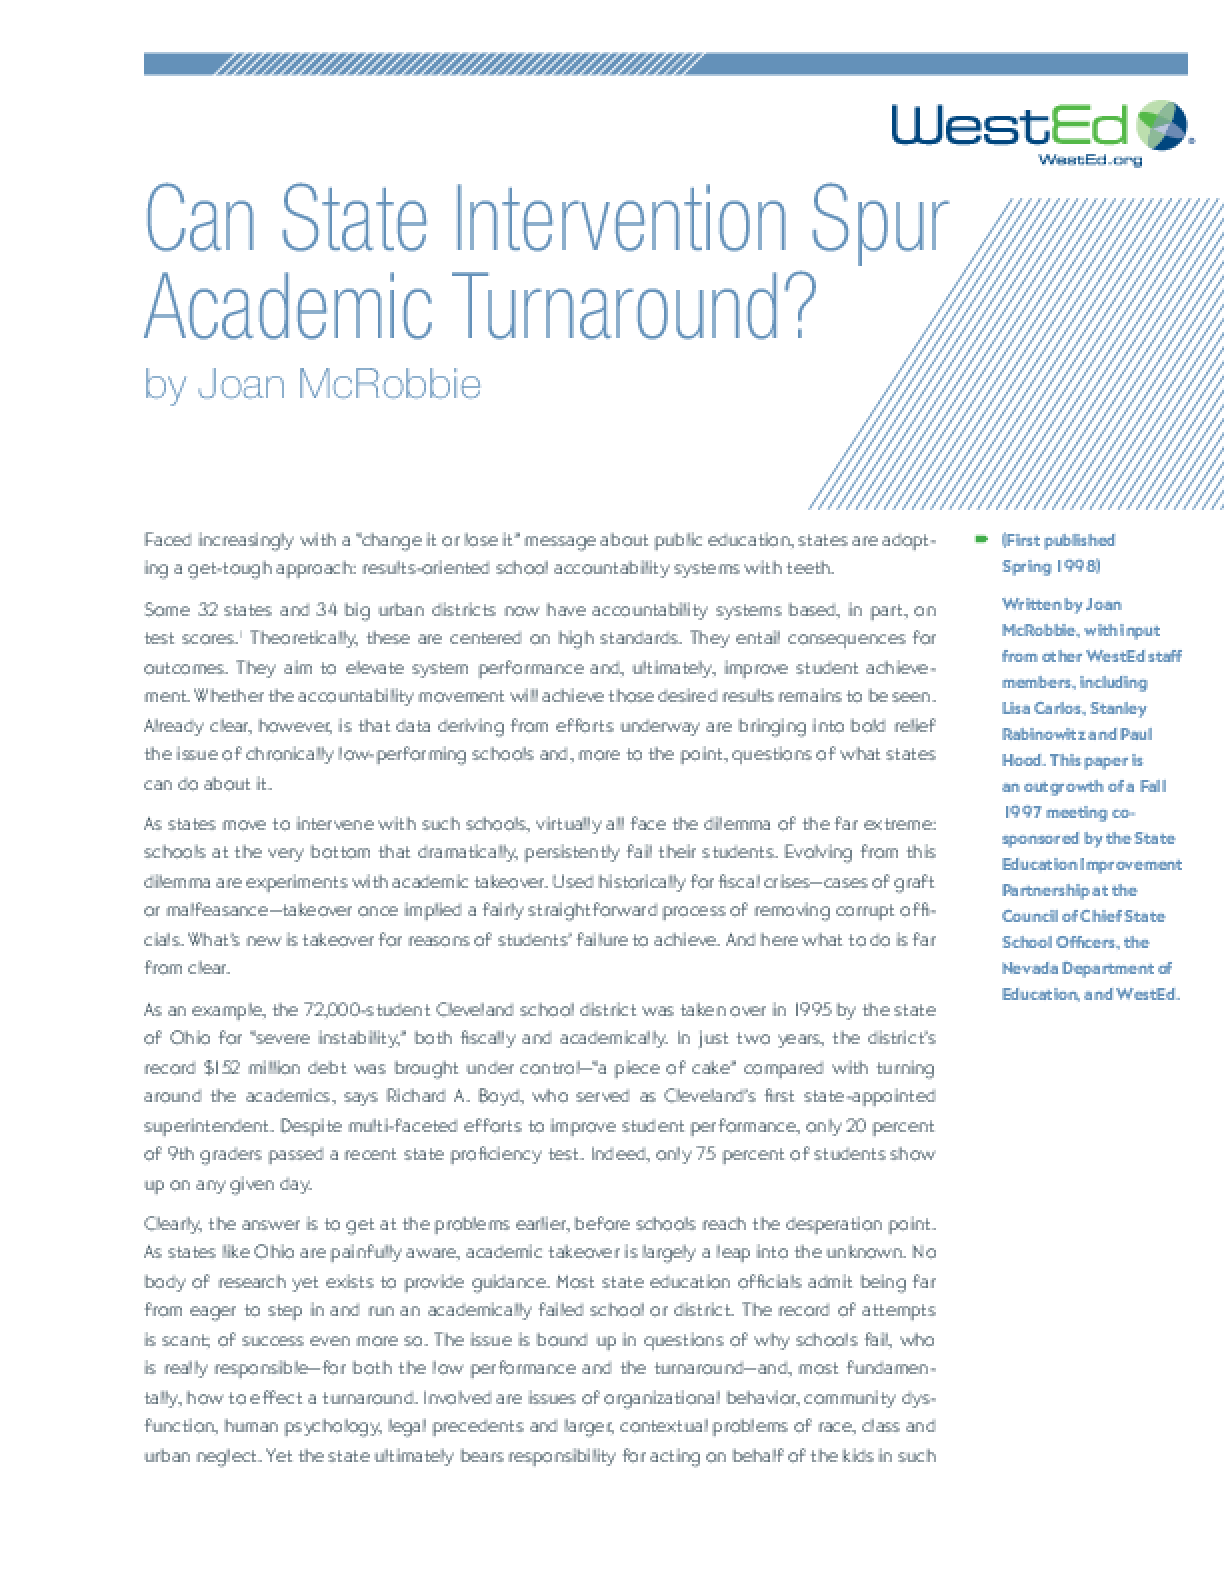 Can State Intervention Spur Academic Turnaround?